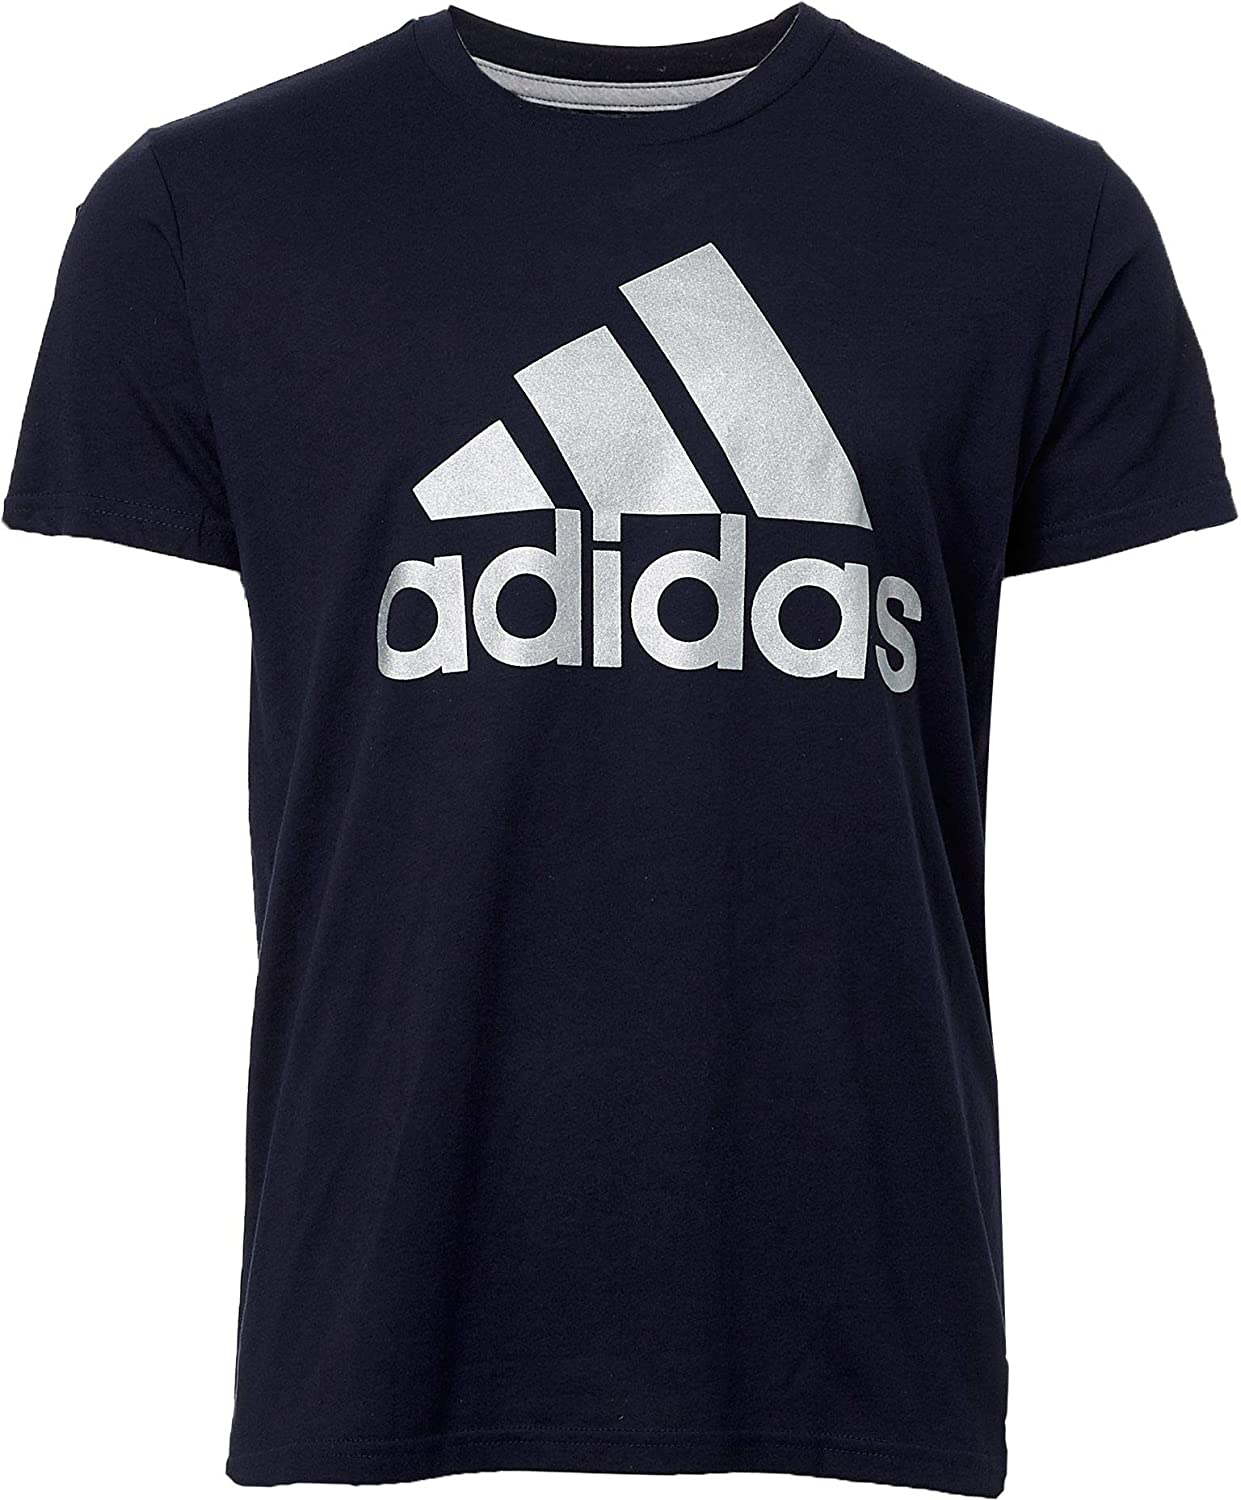 adidas Men's Badge of Sport Classic T-Shirt - Legend Ink/Silver, Medium